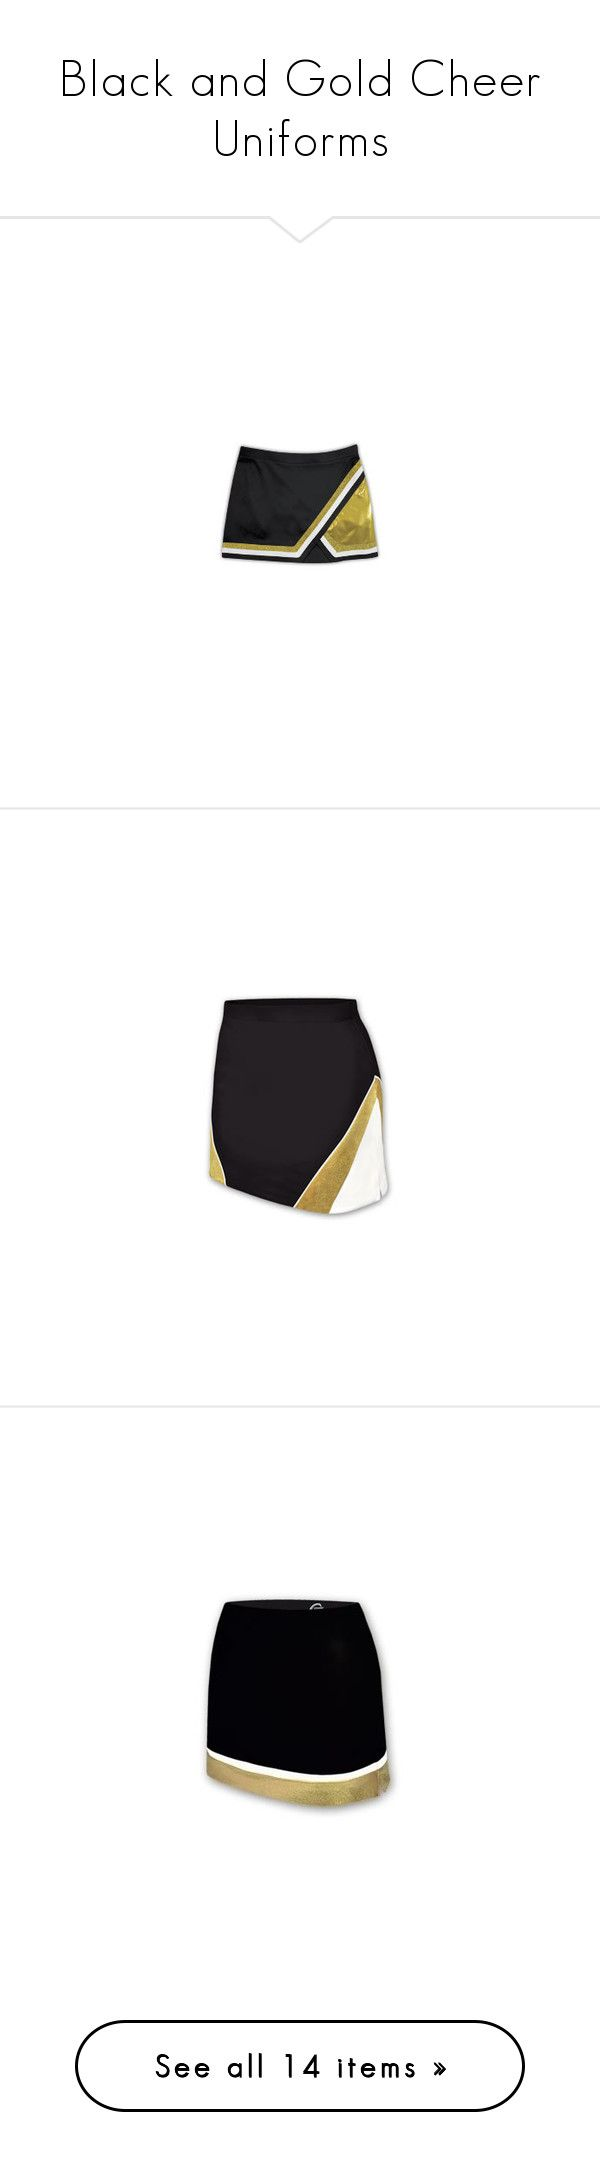 """""""Black and Gold Cheer Uniforms"""" by galacticpeanut ❤ liked on Polyvore featuring skirts, cheerleading, cheer, sports, sports skirts, metallic skirt, a-line skirt, metallic a line skirt, knee length a line skirt and cheer uniforms"""